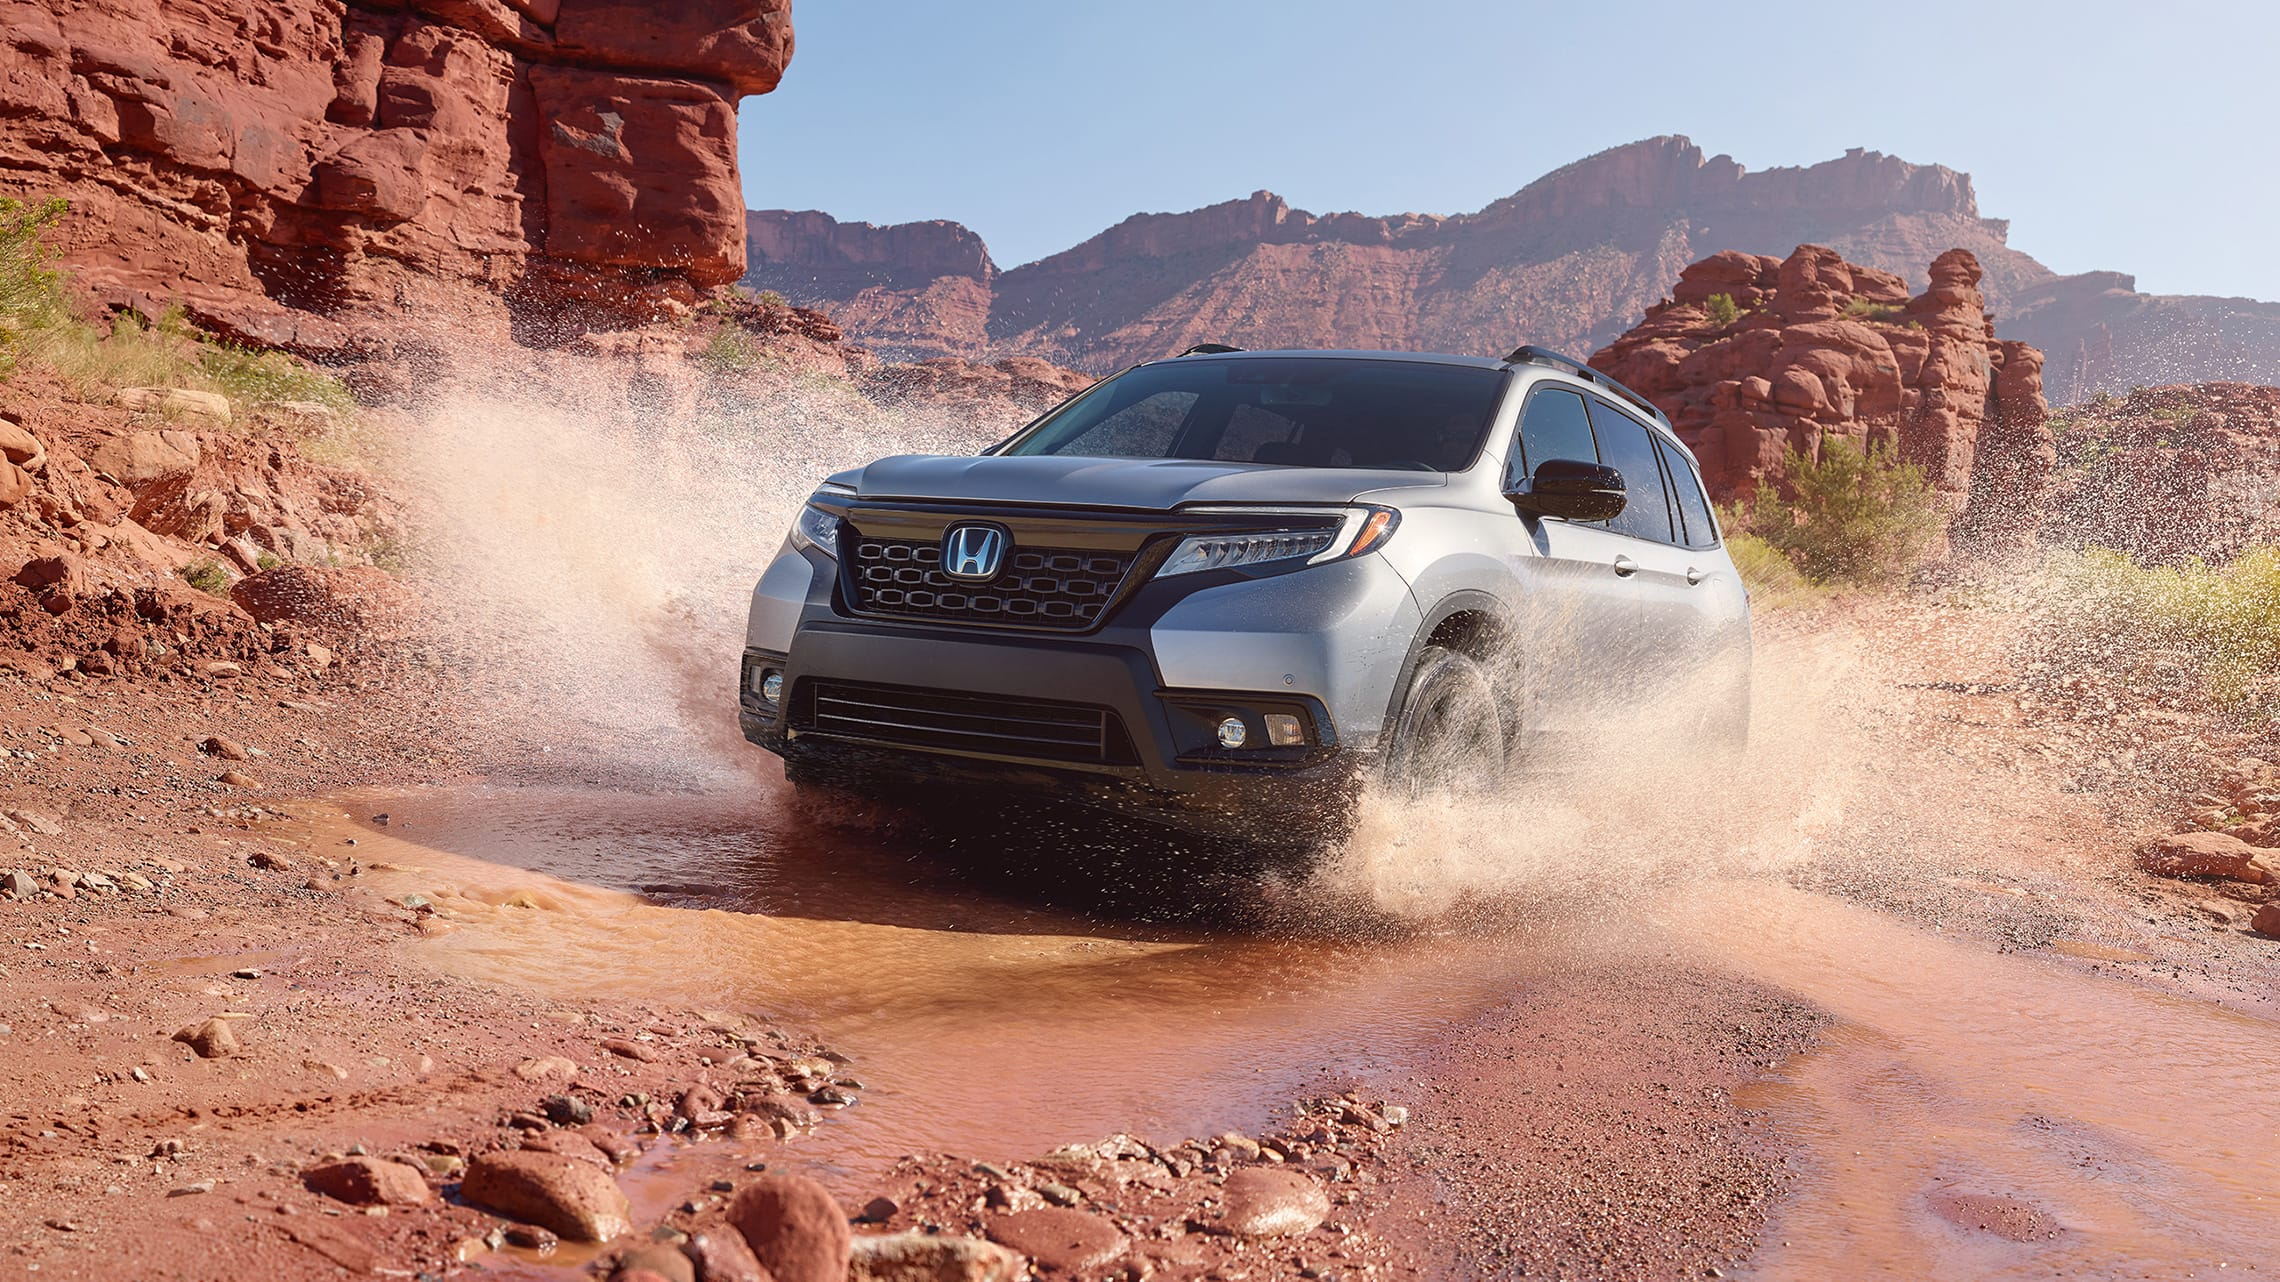 Driver-side front 3/4 view of 2020 Honda Passport Elite in Lunar Silver Metallic, demonstrating all-wheel drive and splashing through water on a rugged mountain road.